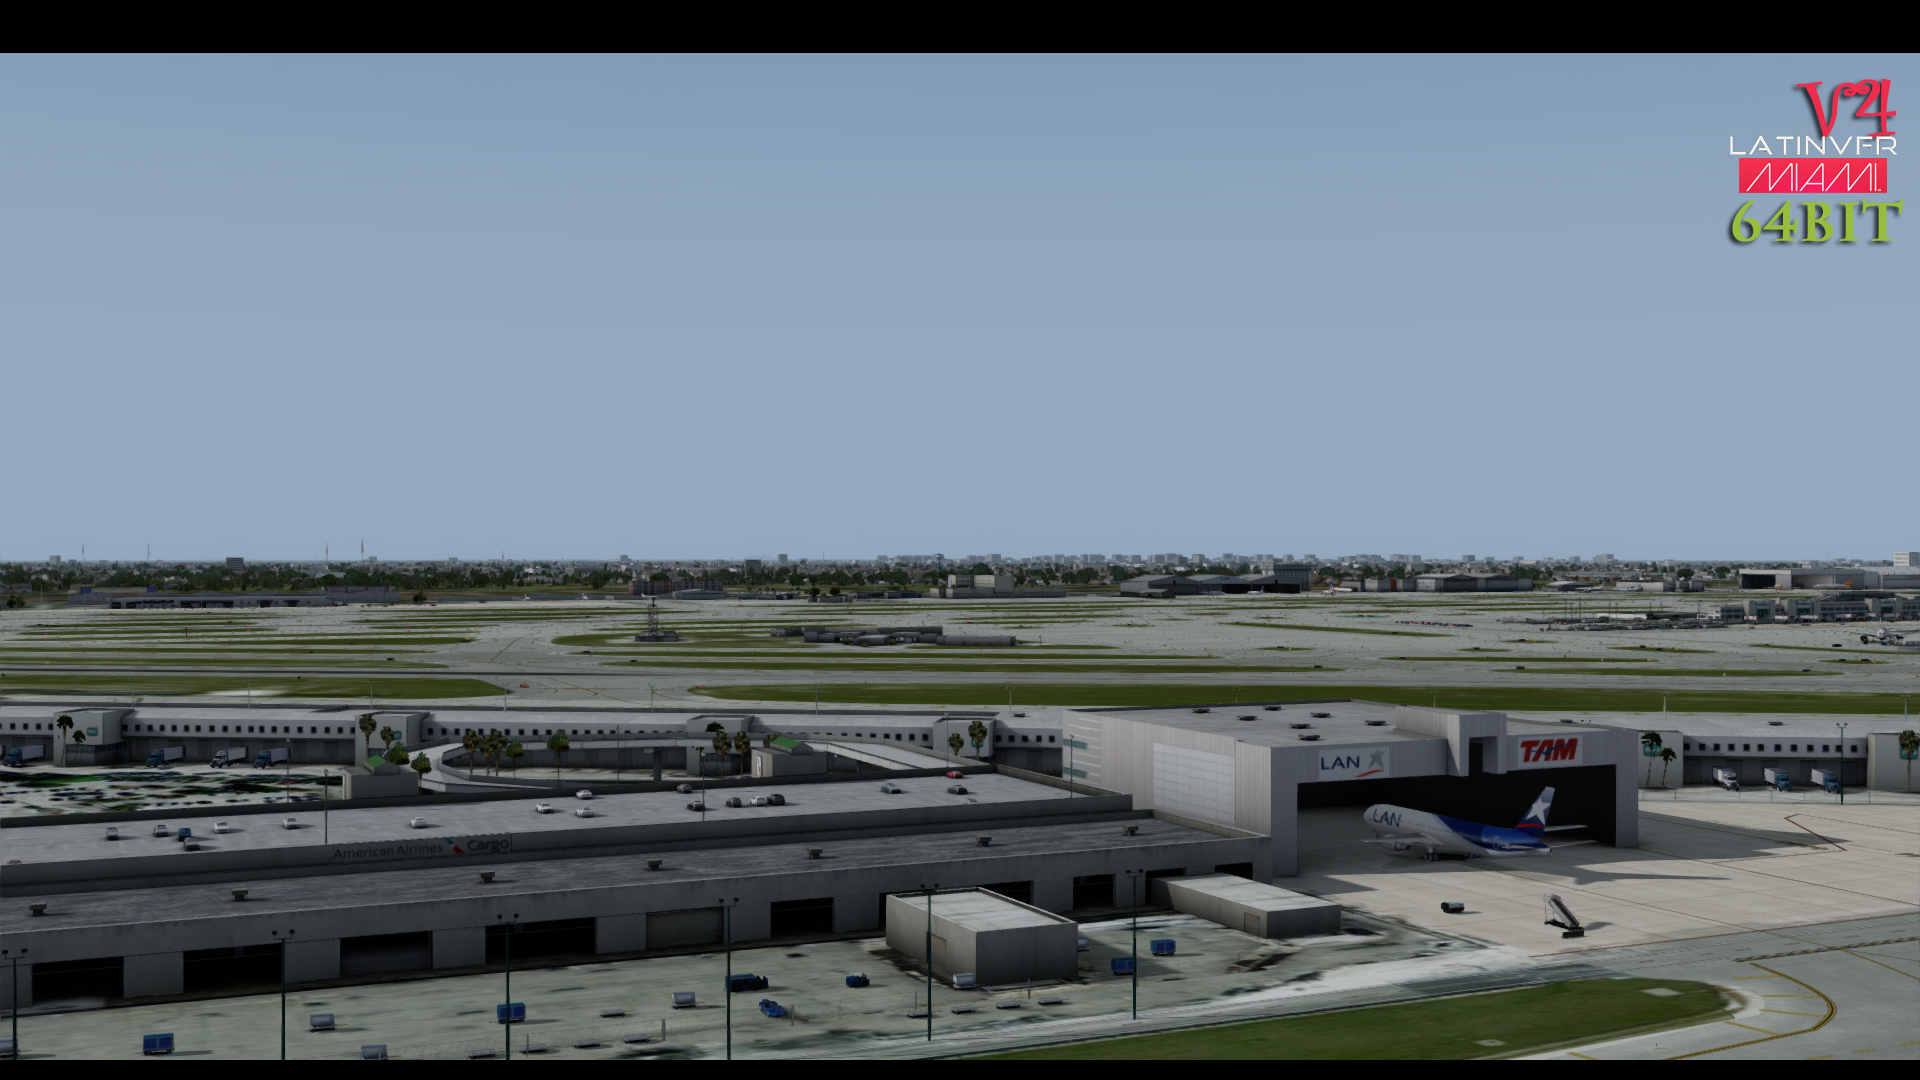 LATINVFR - MIAMI INTERNATIONAL AIRPORT KMIA V4 FSX